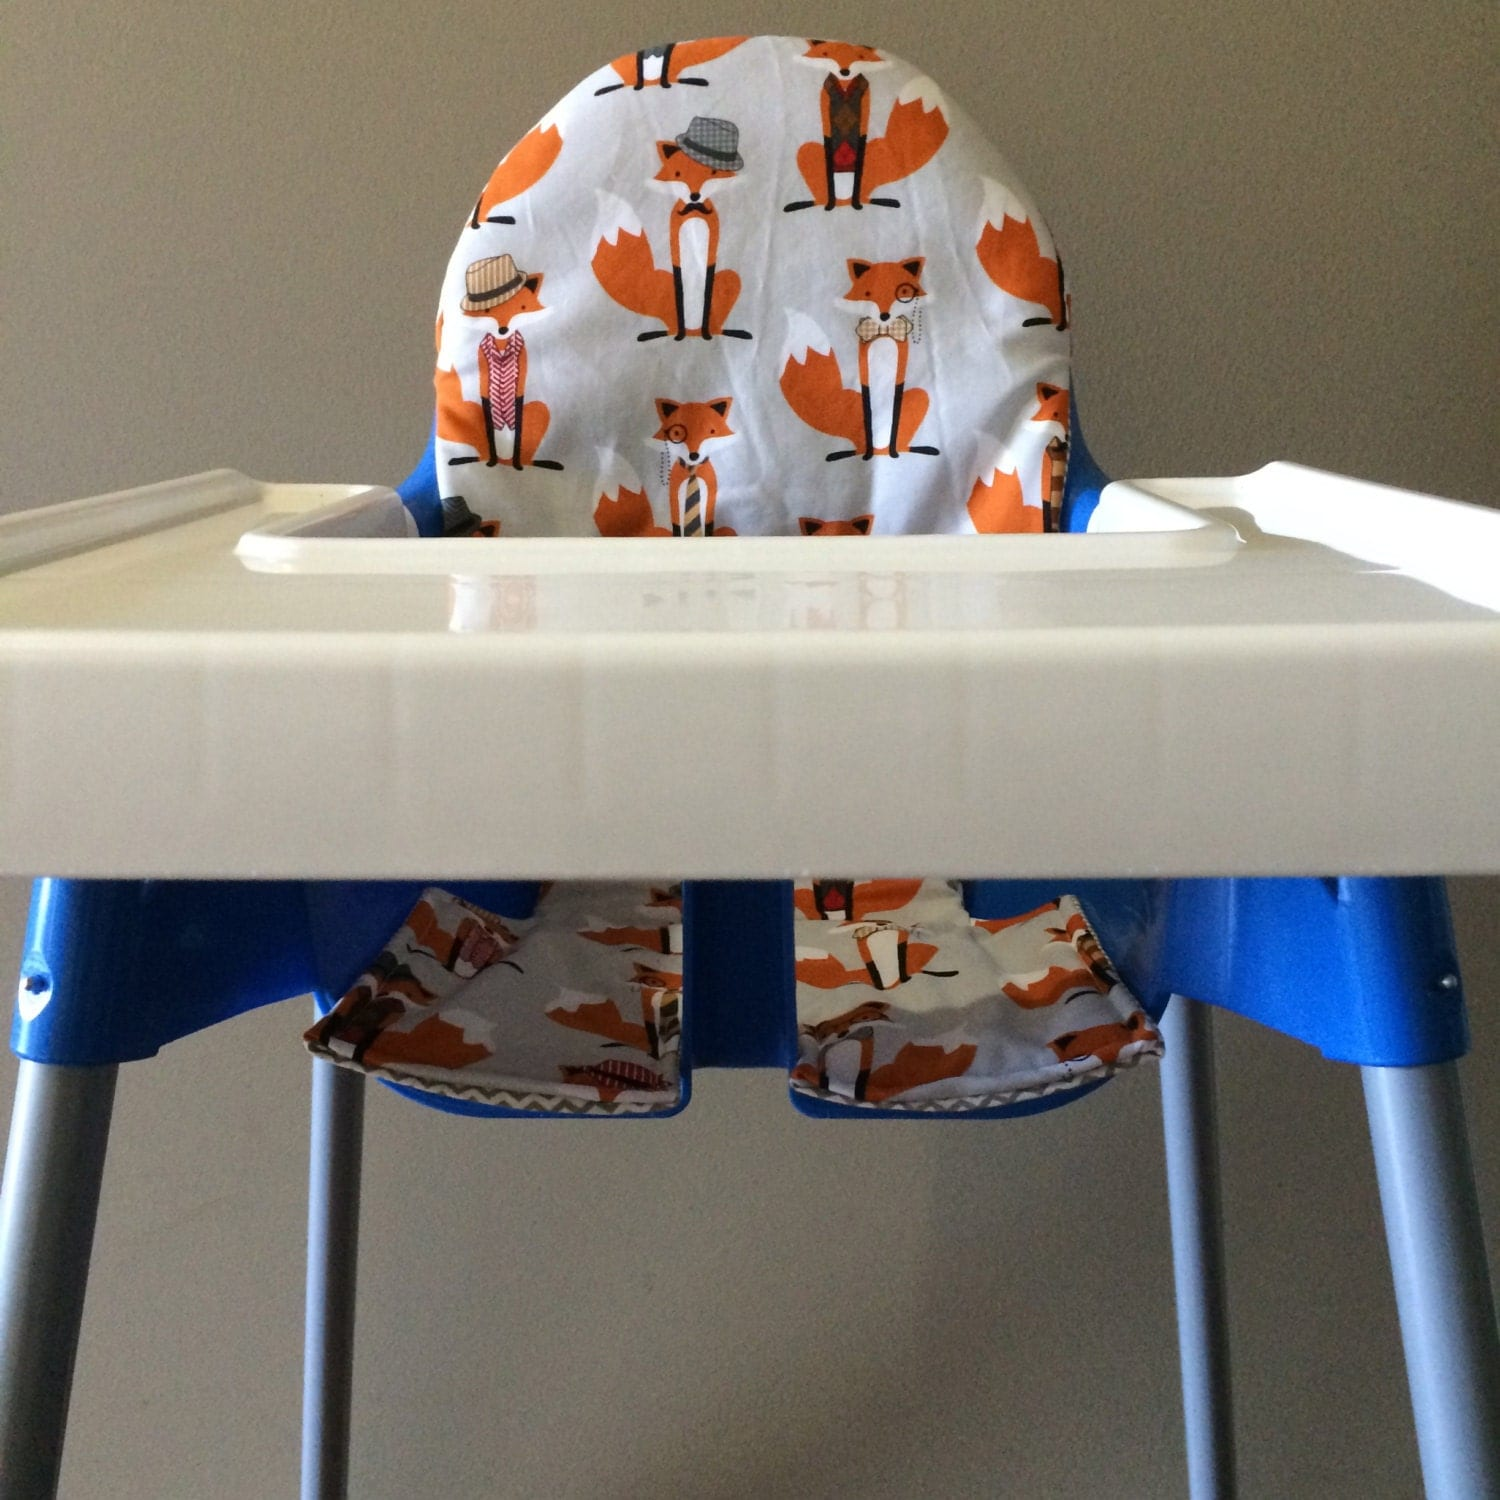 Ikea Antilop high chair cover. Cotton. Orange foxes and grey